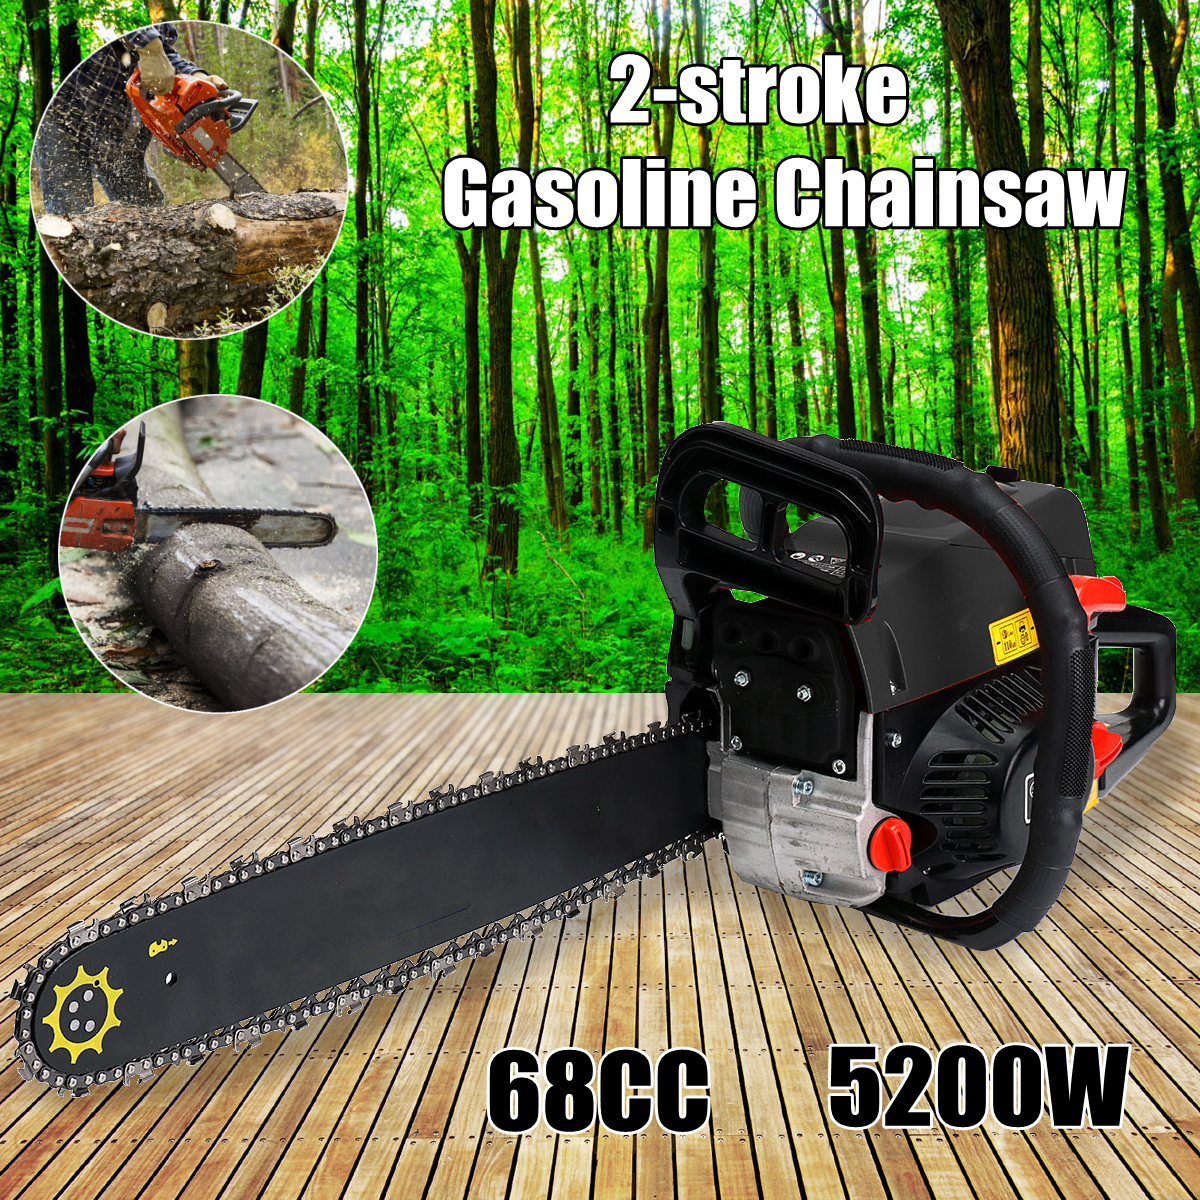 Professional Wood cutter 5200W 68CC, Mini Gasoline Chainsaw Machine Cutting Wood 2-stroke Gas Chain Saw with 20 BladeProfessional Wood cutter 5200W 68CC, Mini Gasoline Chainsaw Machine Cutting Wood 2-stroke Gas Chain Saw with 20 Blade